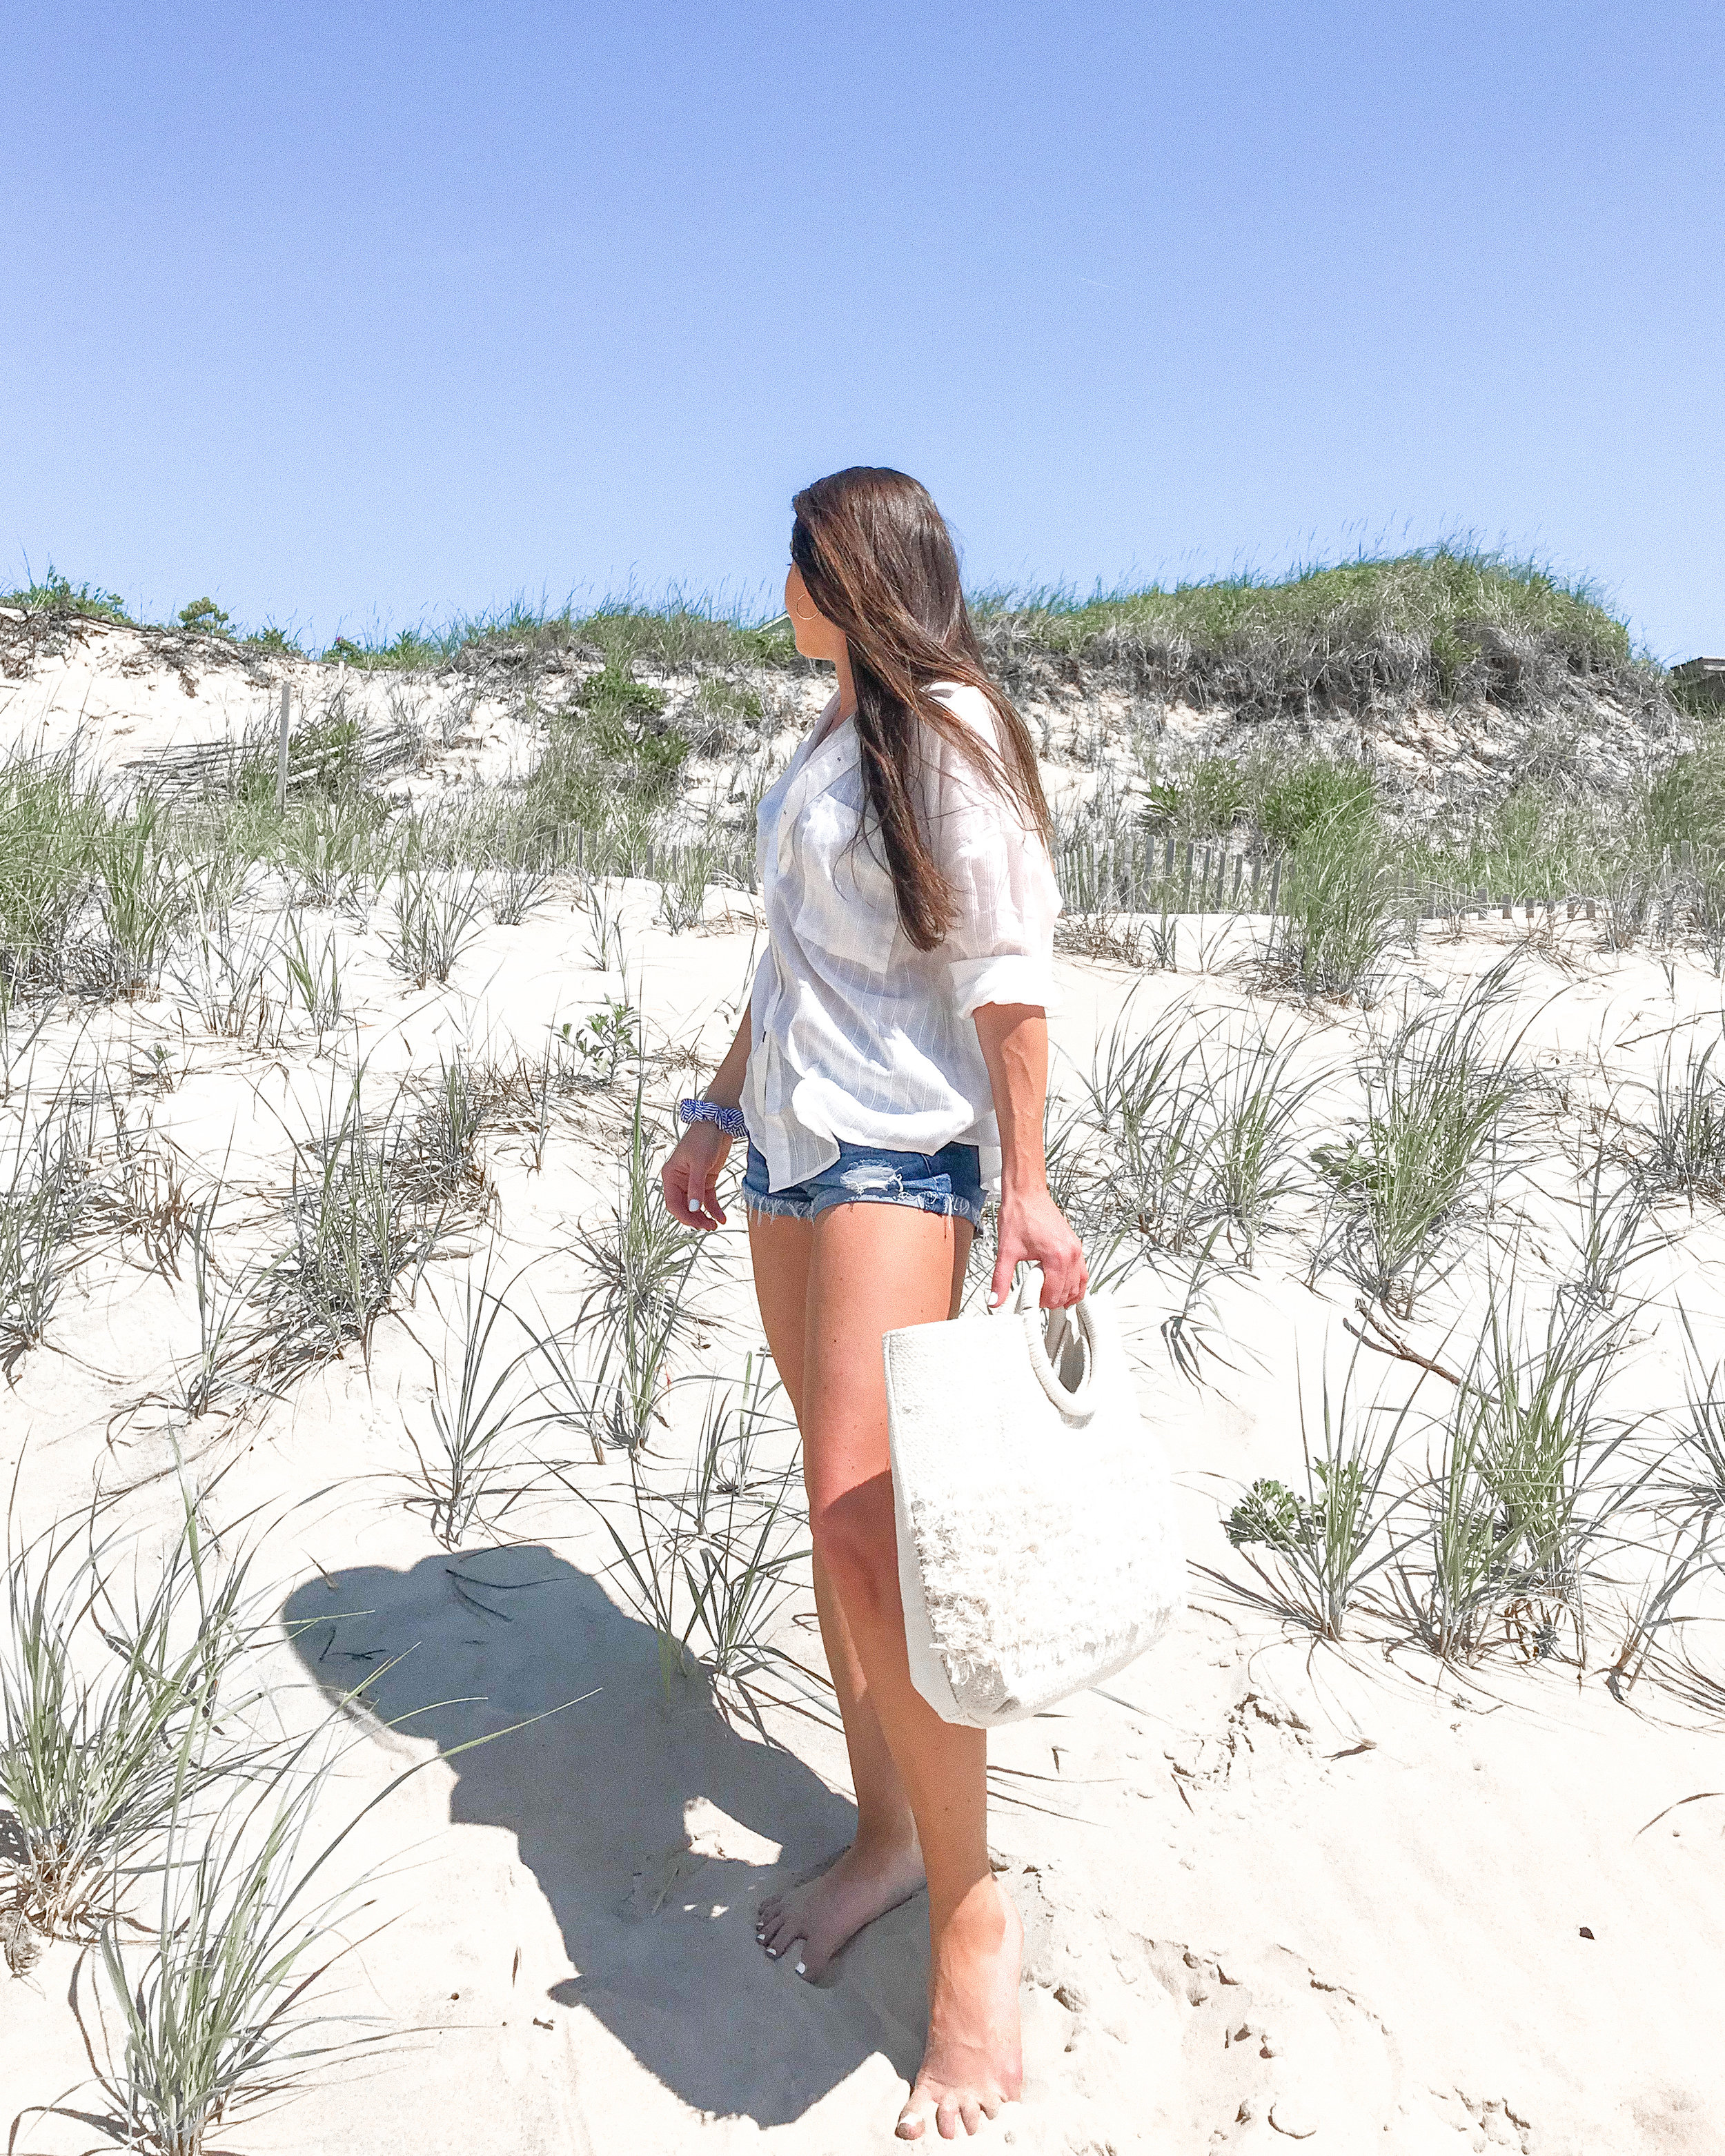 Montauk Summer Packing List: Outfit Ideas and What to Bring to Montauk